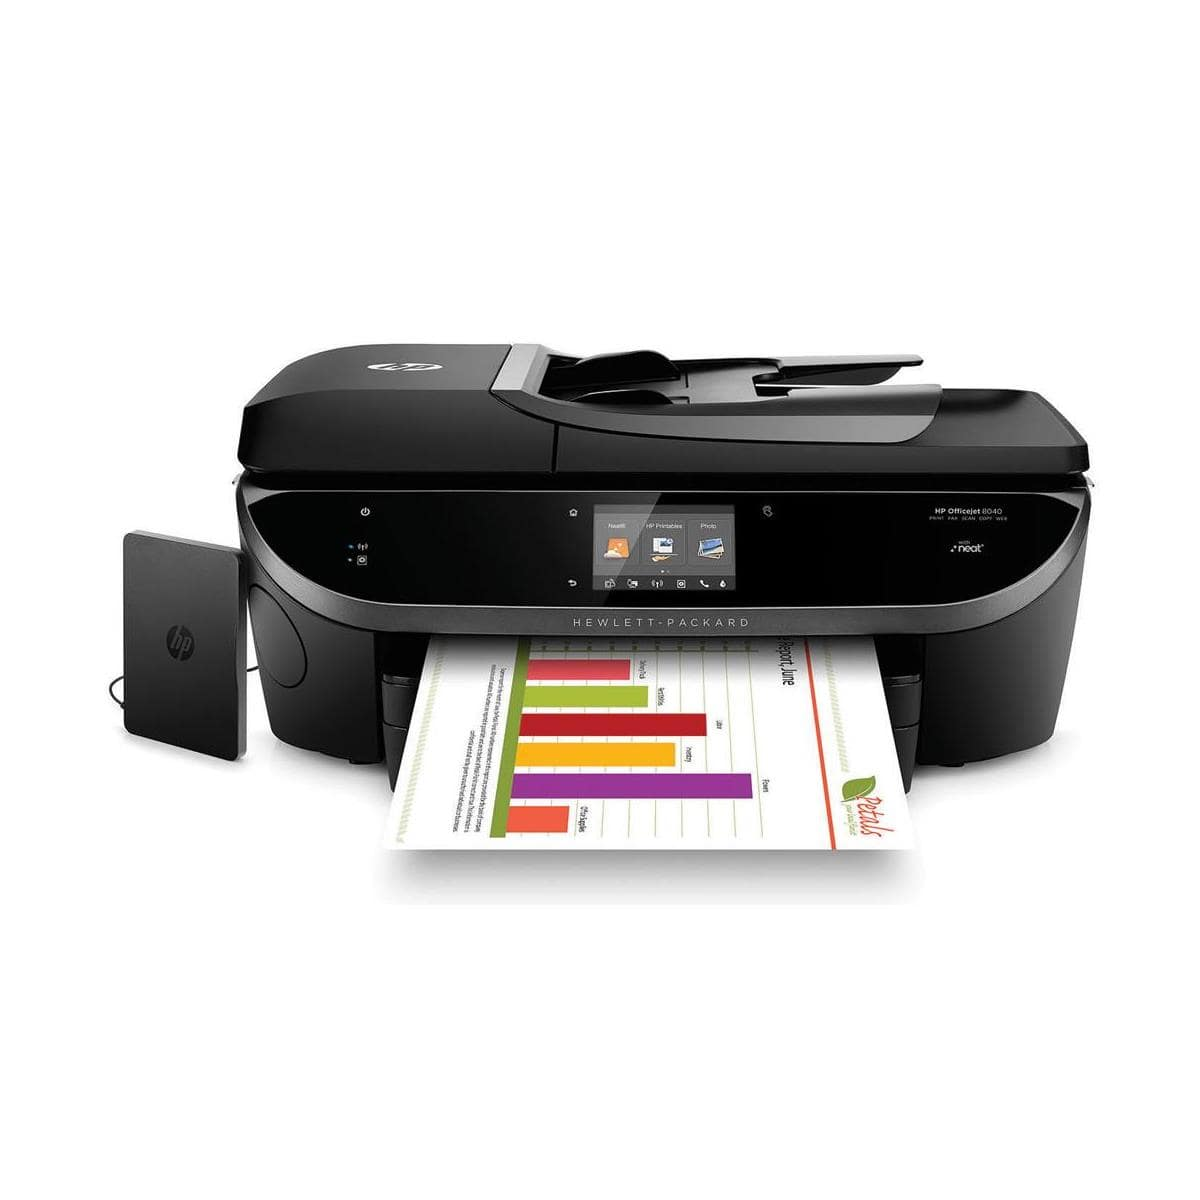 HP Officejet 8040 Wireless Color e-All-In-One Inkjet Printer  $119 + Free Shipping